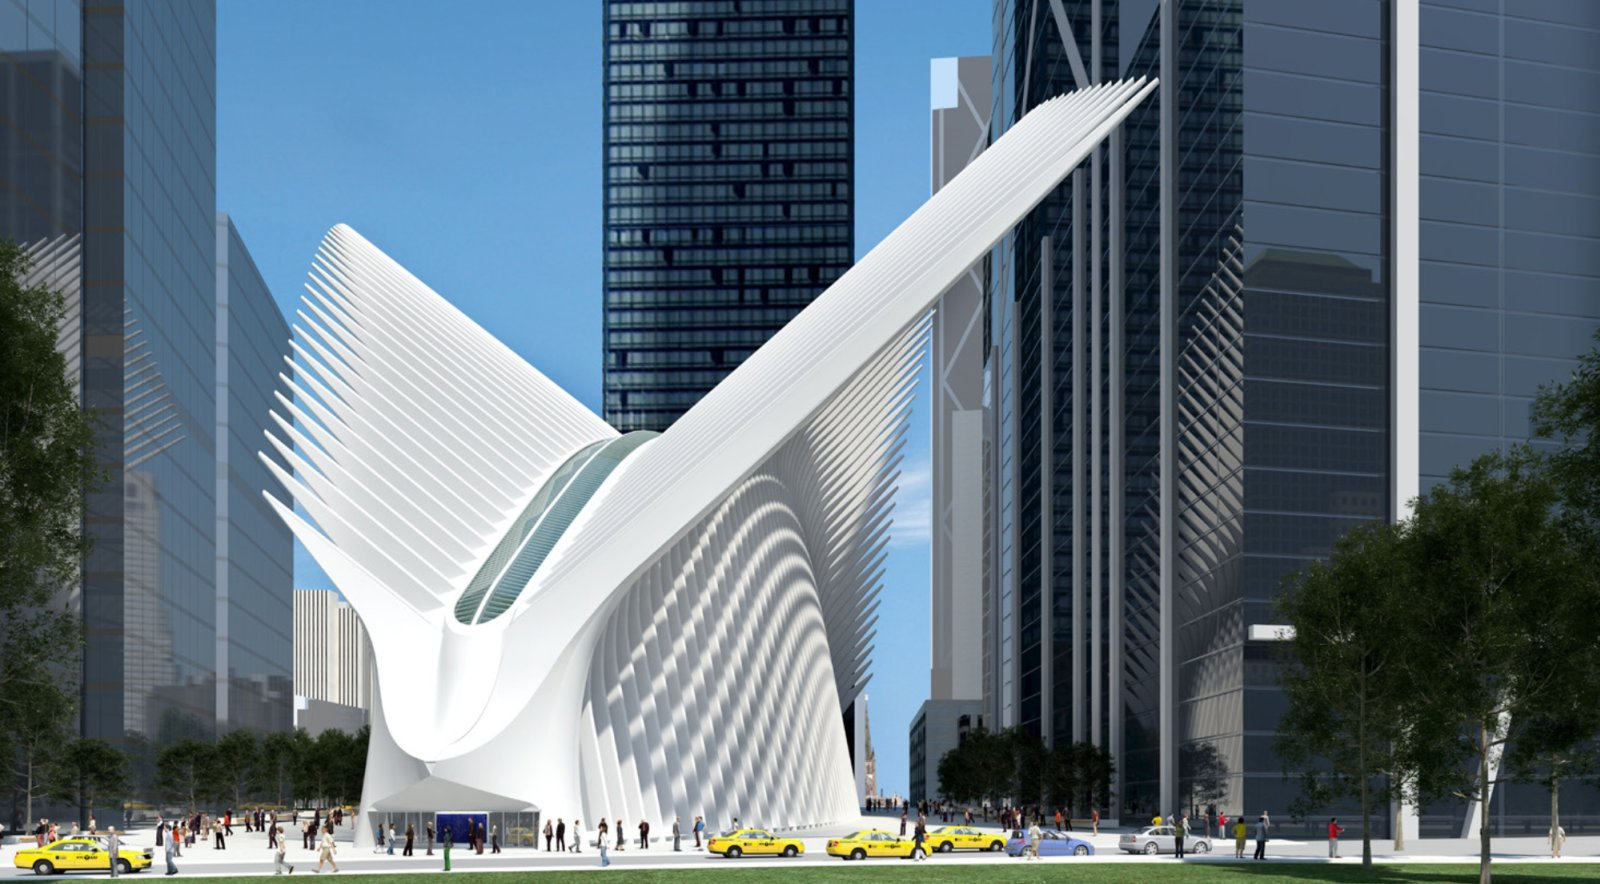 New wtc terminal station for path service by santiago for Ny transit museum store